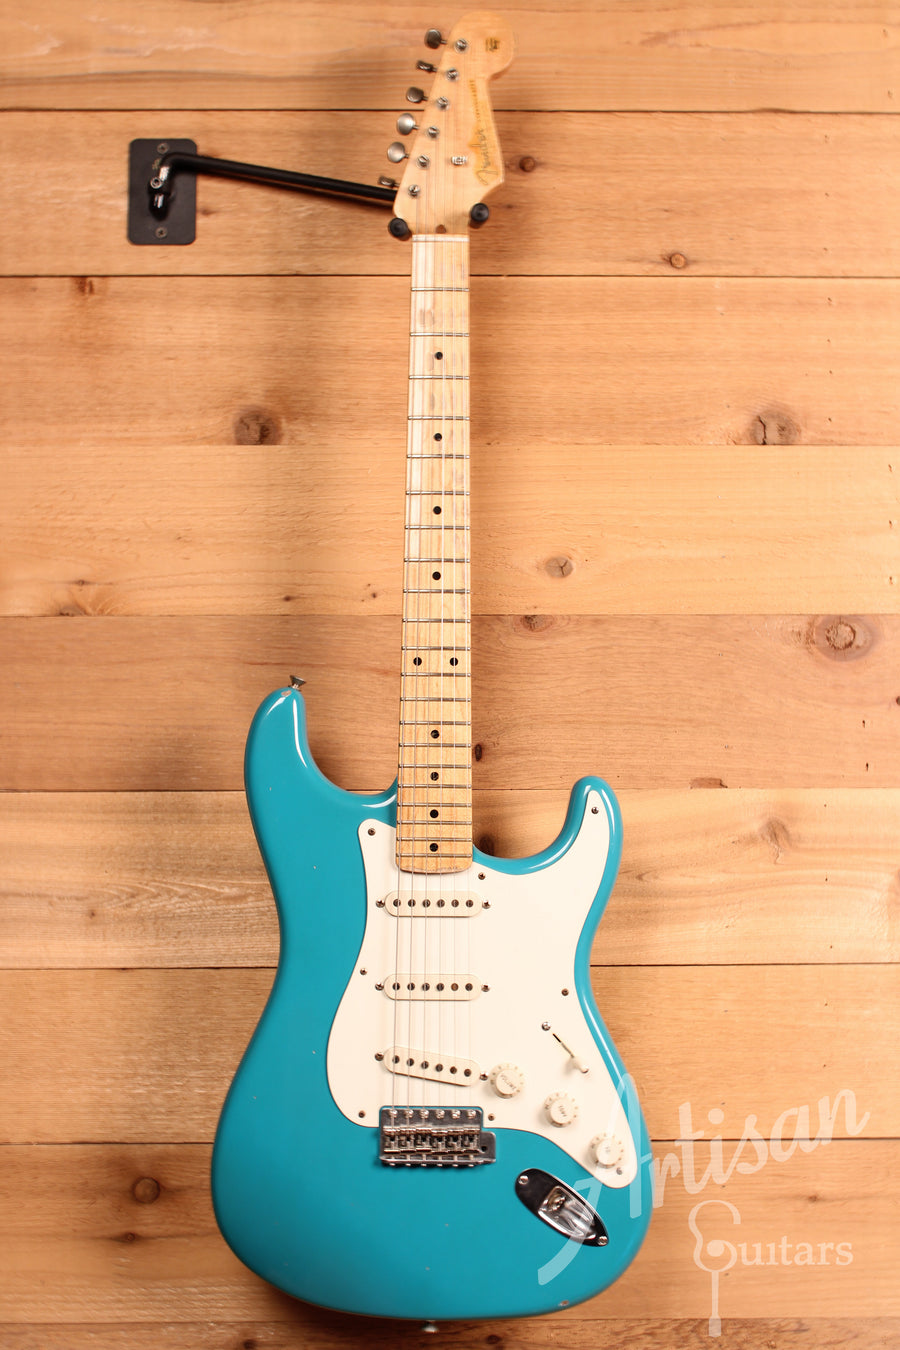 Fender Custom Shop Dave's Guitars 25th Anniversary Stratocaster Relic Taos Turqoise Finish Pre-Owned 2007 ID-11357